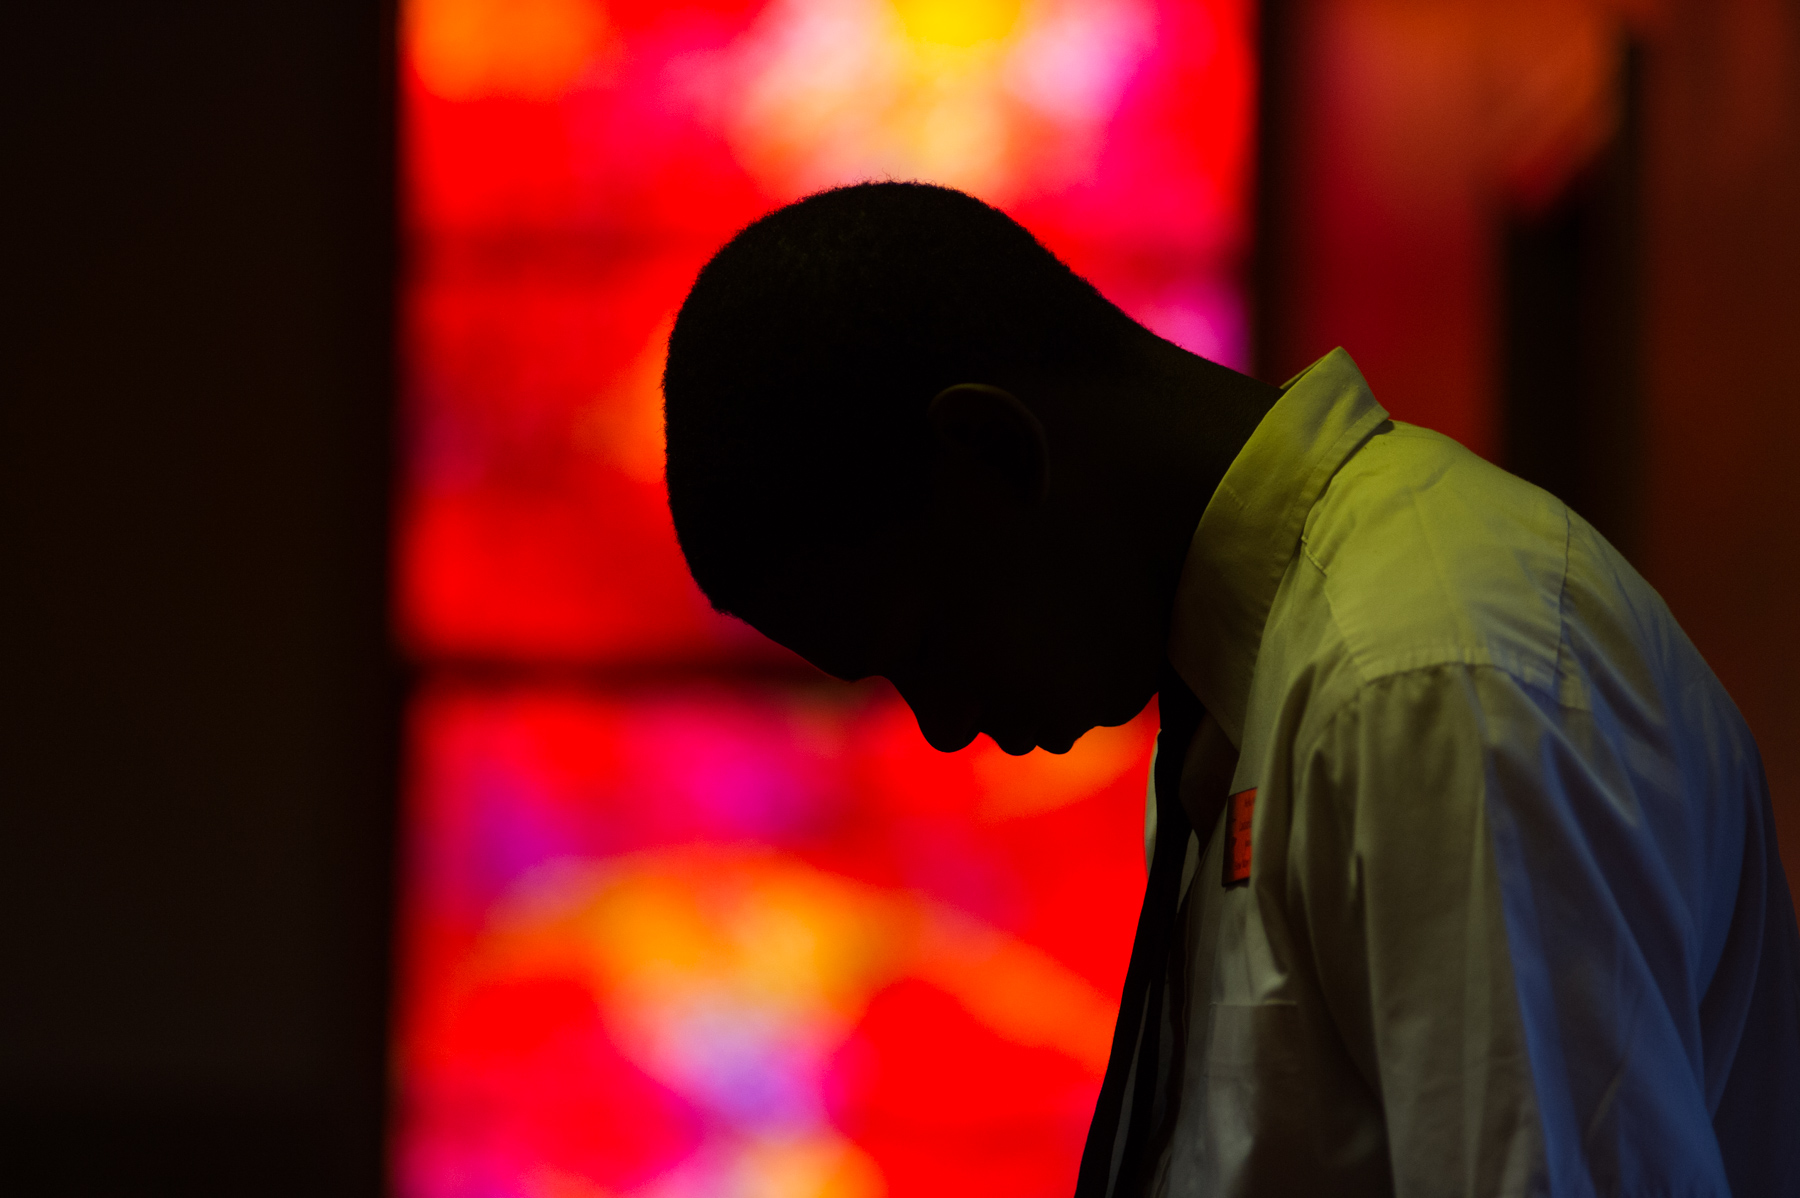 A teenage usher bows his head for prayer during church services.